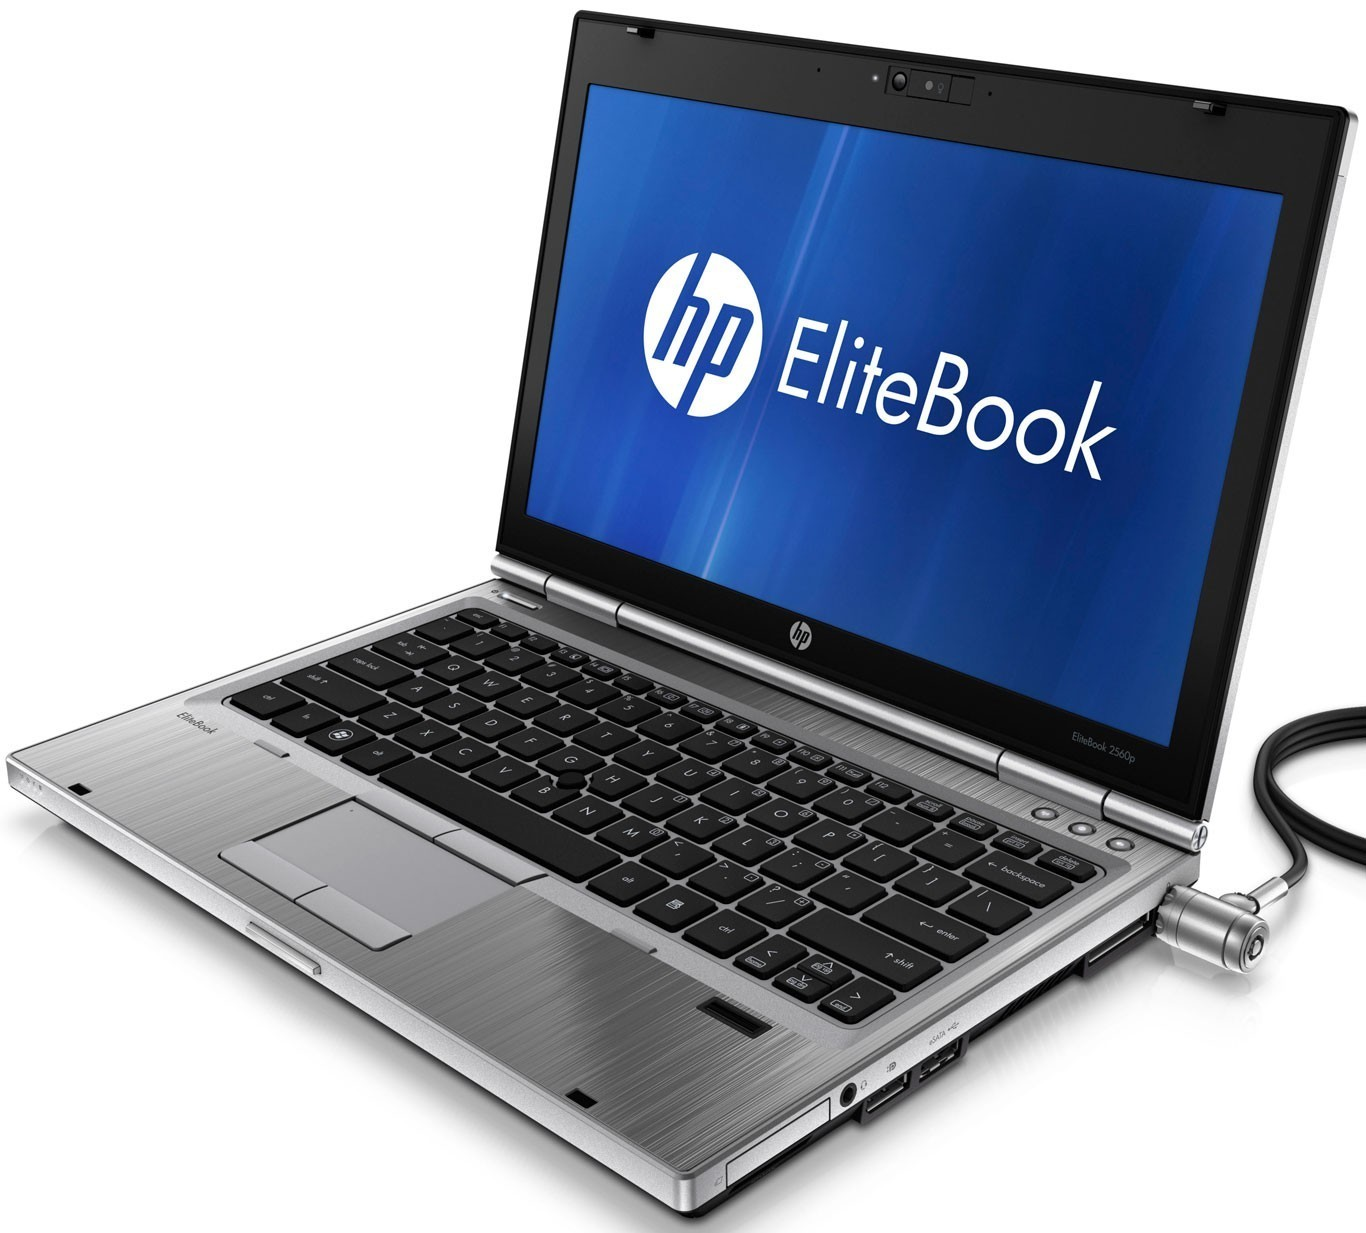 tonpc ma vente pc portable au maroc hp elitebook 2560p core i7 2620m 2 7ghz turbo 3 4ghz 4g ram. Black Bedroom Furniture Sets. Home Design Ideas